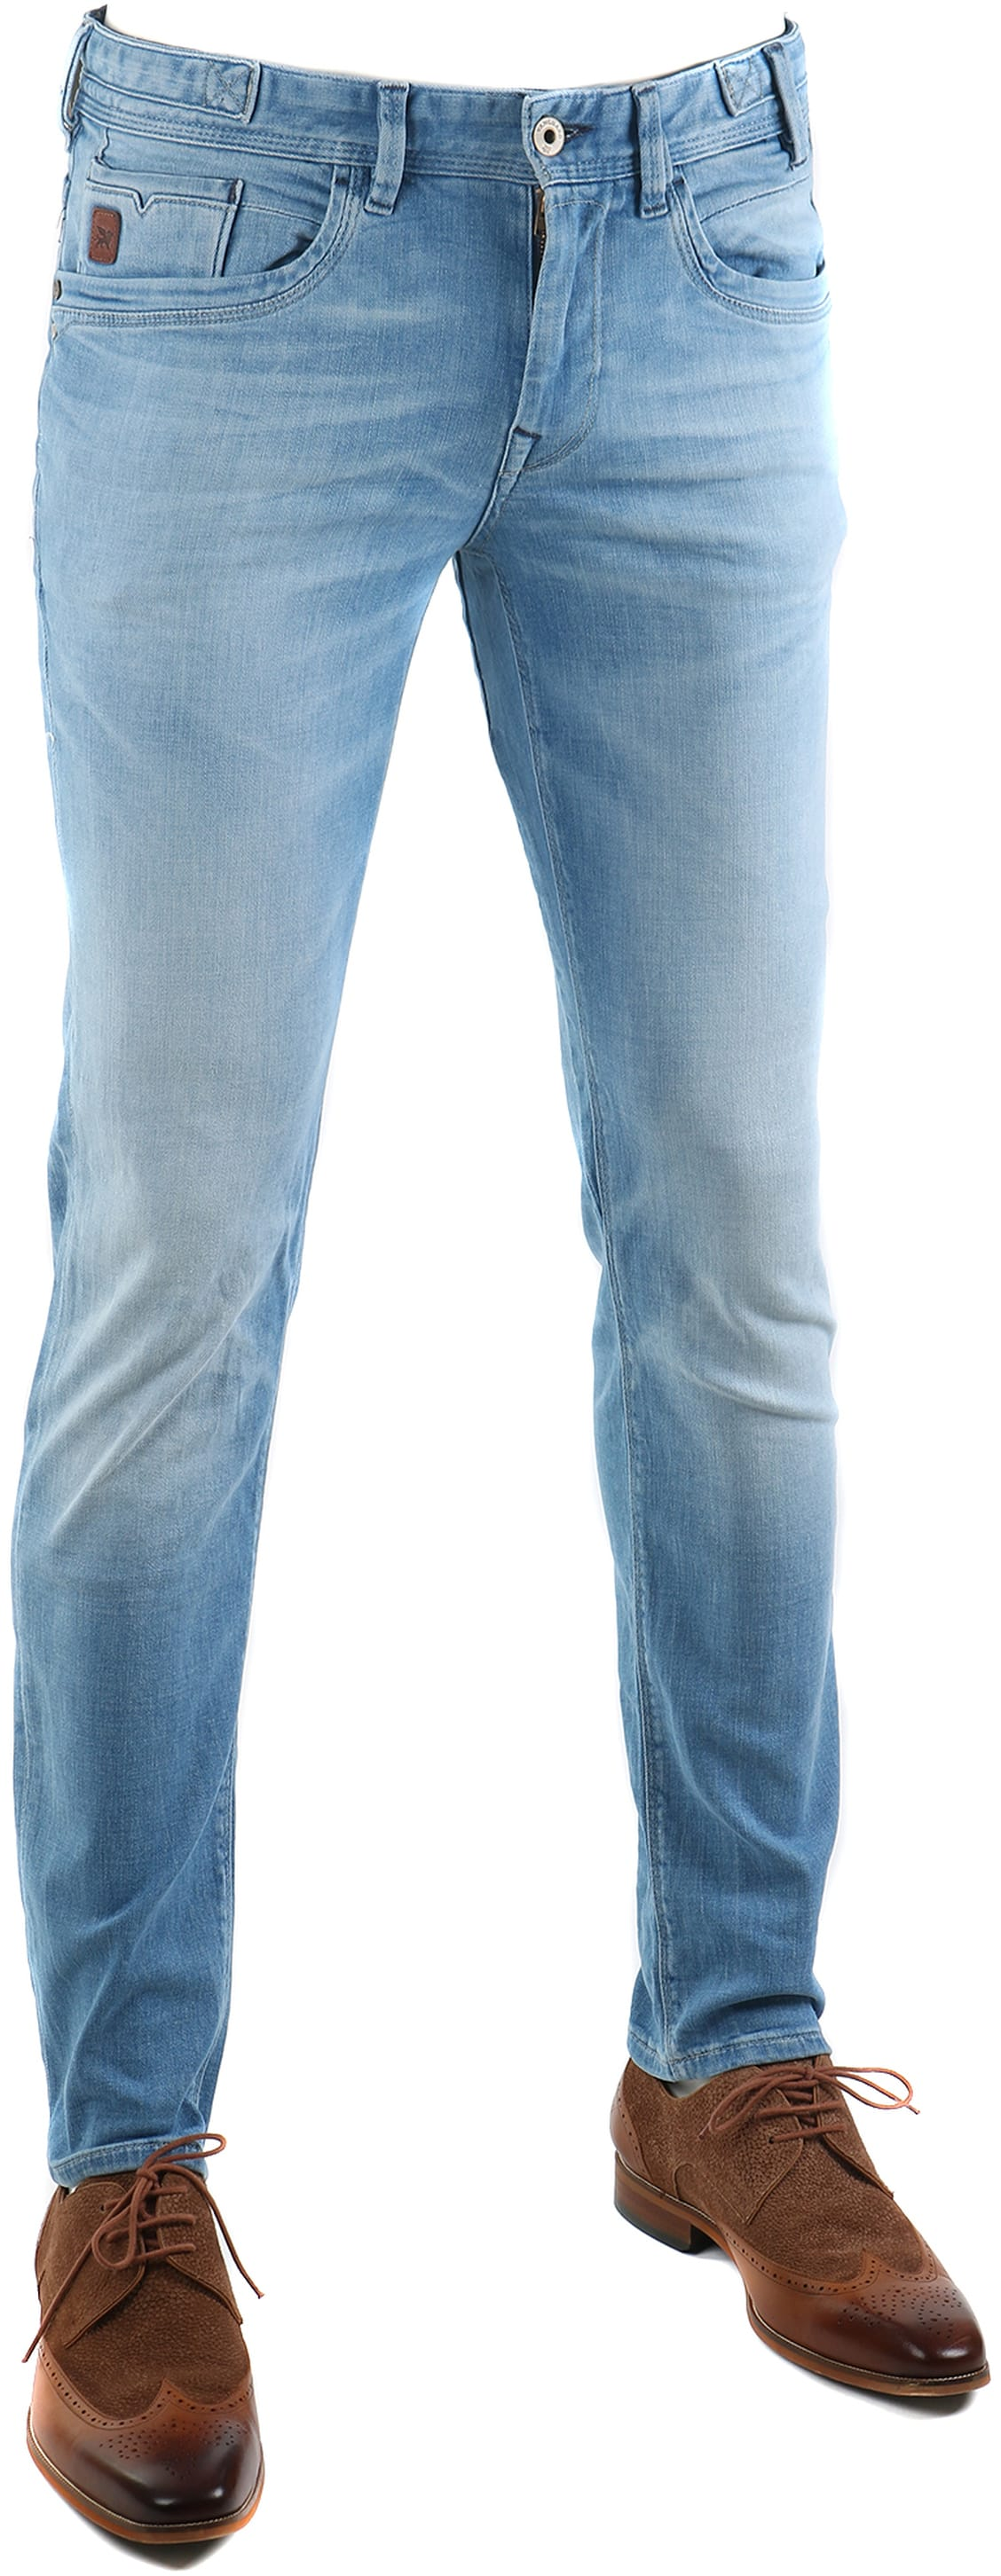 Vanguard V8 Racer Jeans Electric Blue foto 0